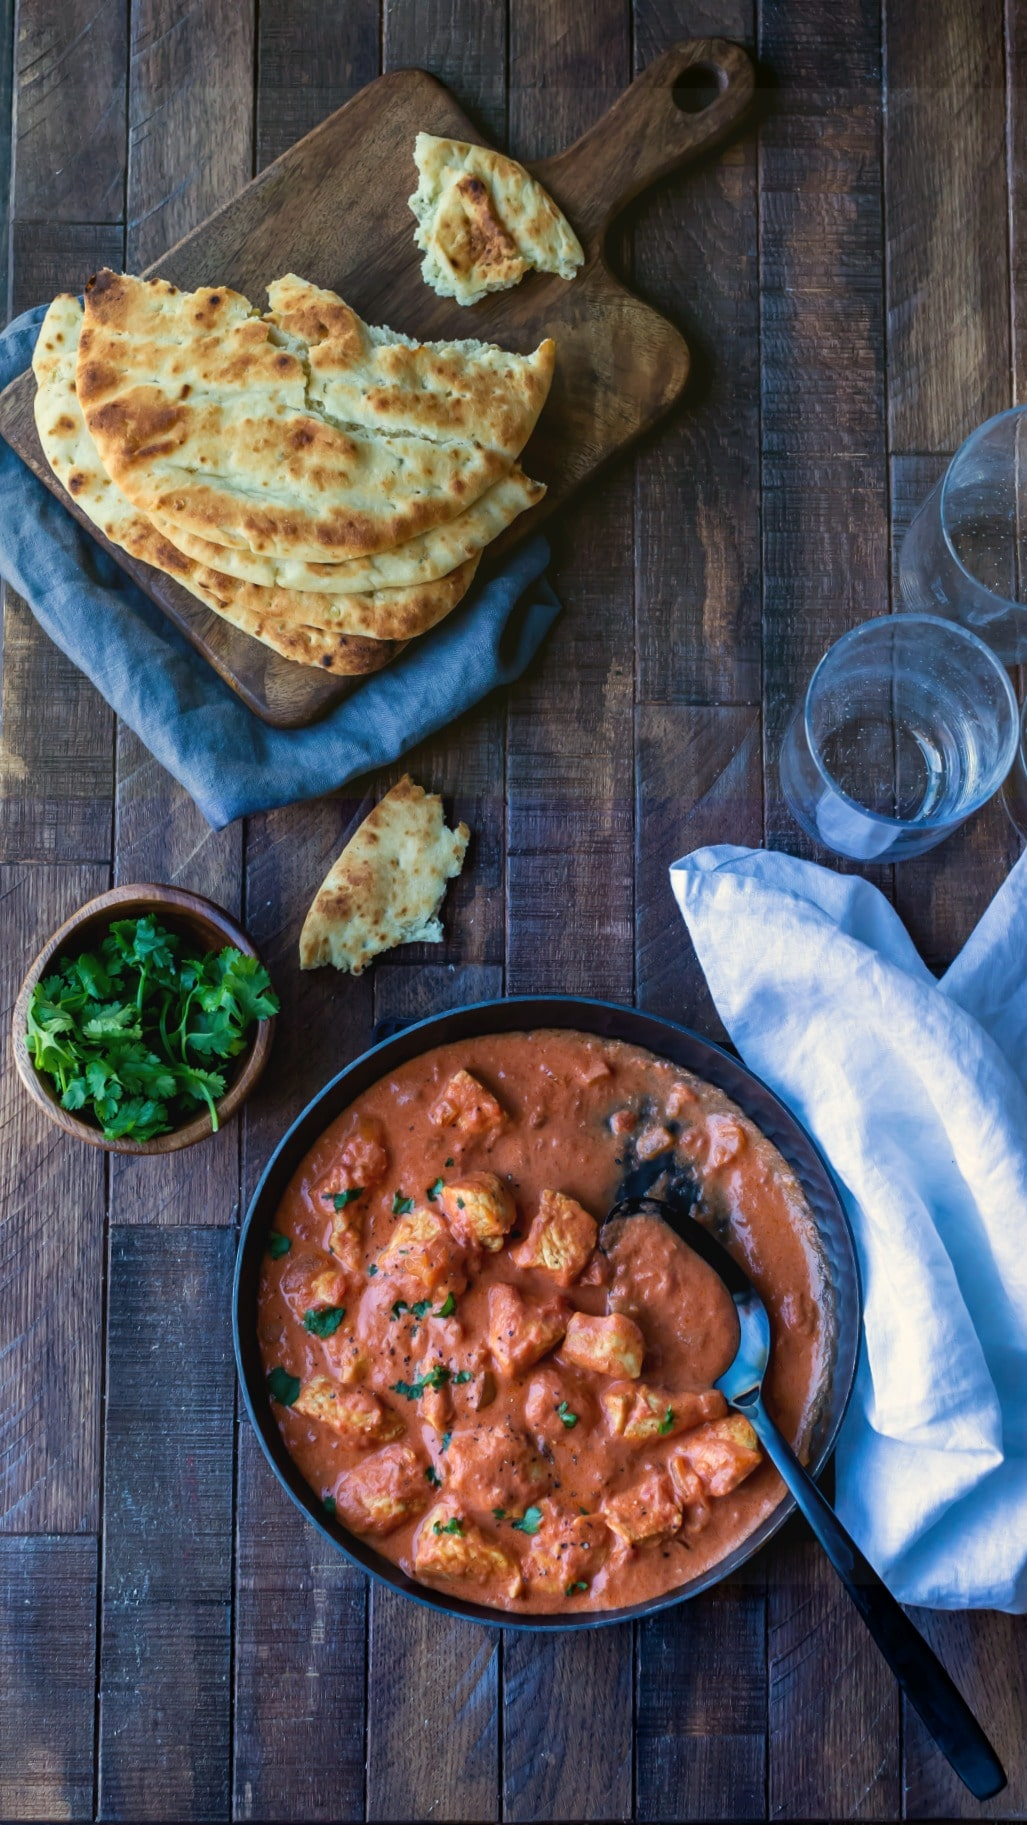 Dish of easy chicken tikka masala next to a bowl of cilantro and pieces of naan